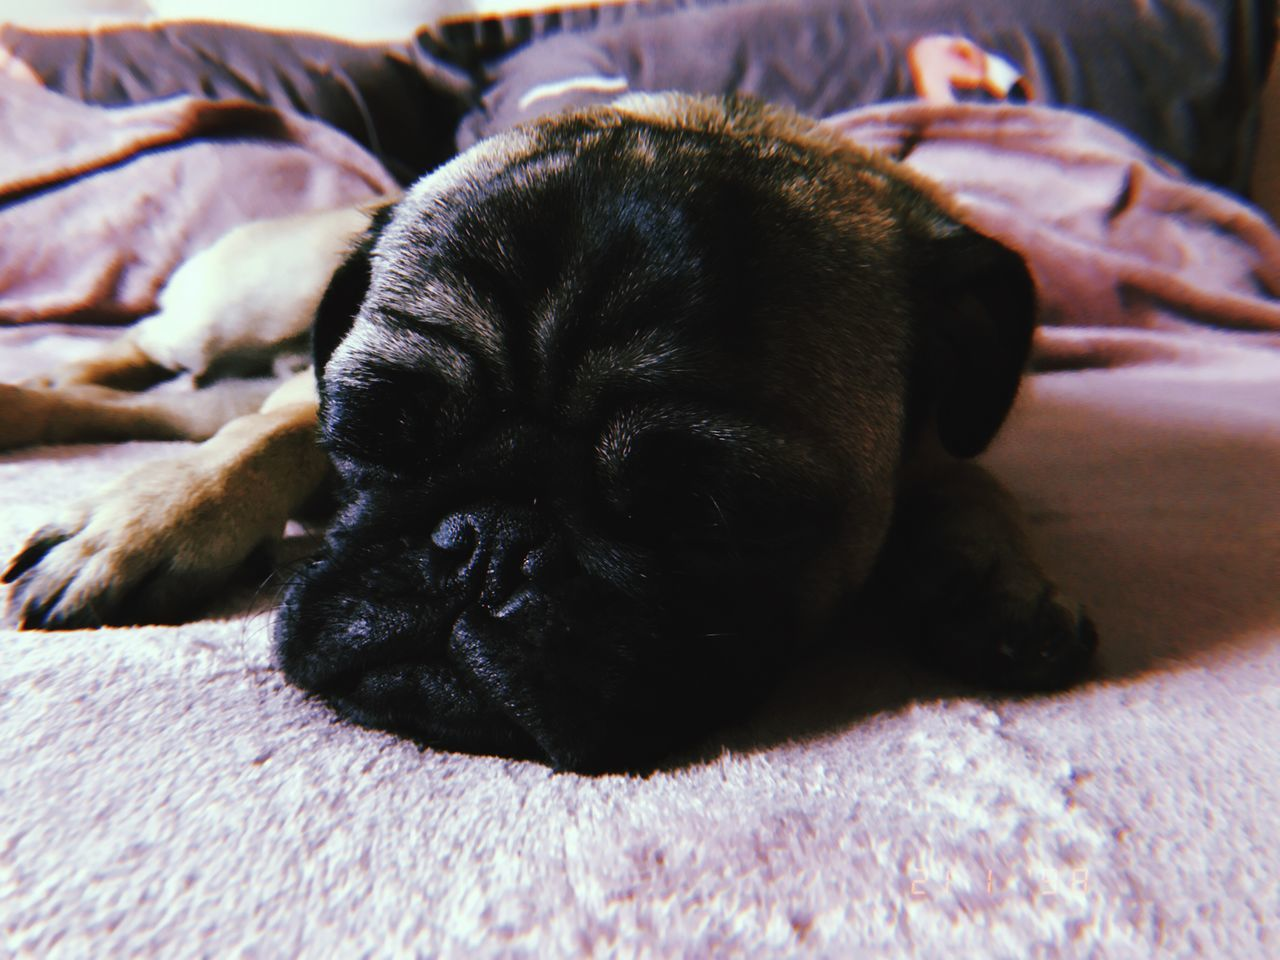 one animal, animal themes, mammal, animal, domestic, pets, dog, canine, relaxation, domestic animals, vertebrate, bed, furniture, resting, lying down, lap dog, indoors, no people, close-up, sleeping, small, animal head, napping